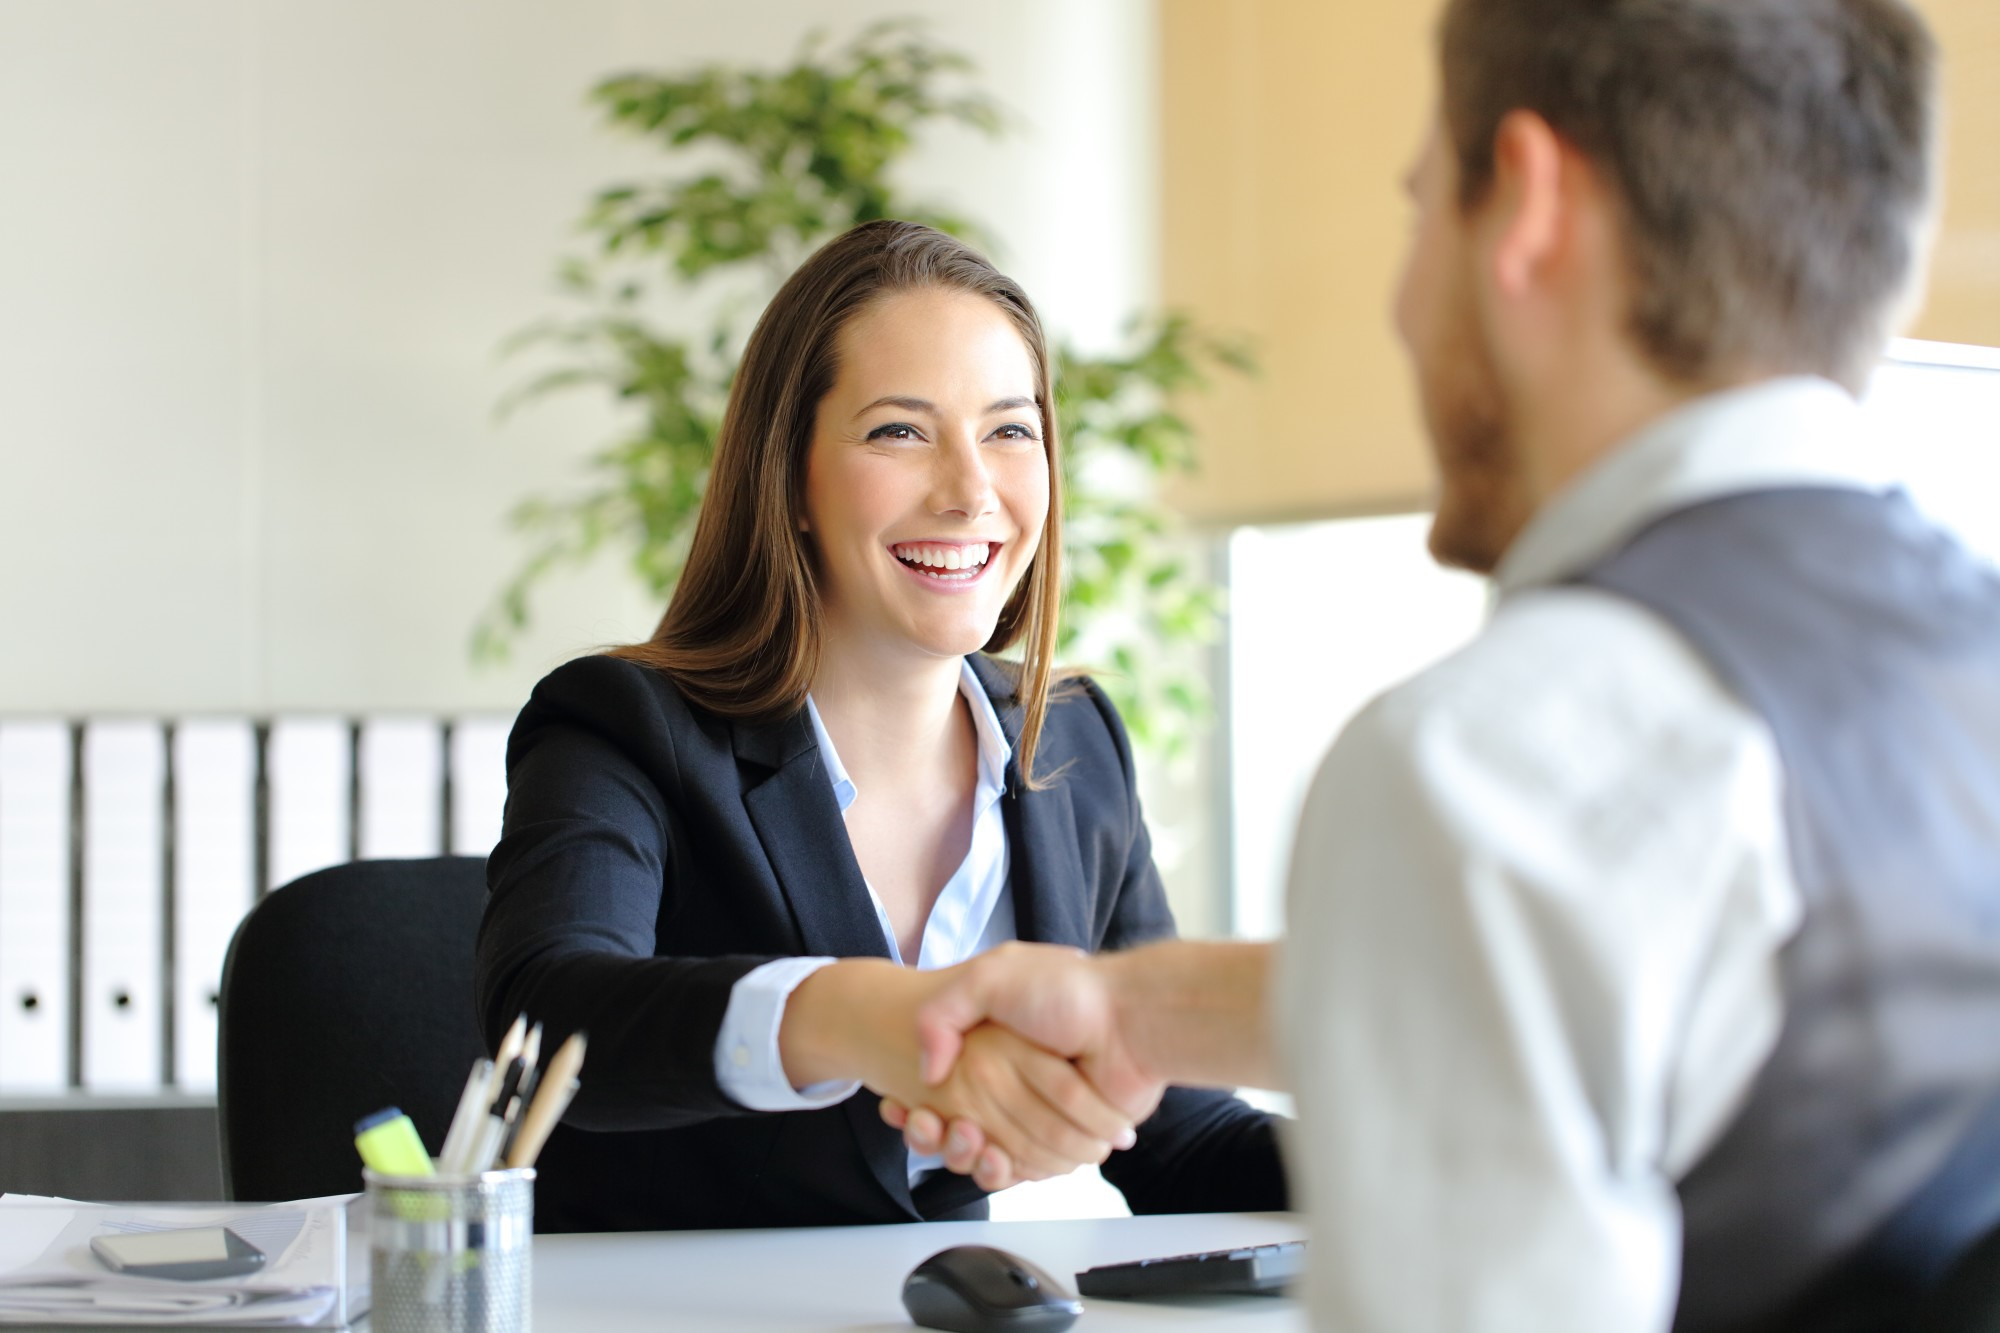 Dust Yourself off and Try Again: How to Improve Your Interviewing Skills